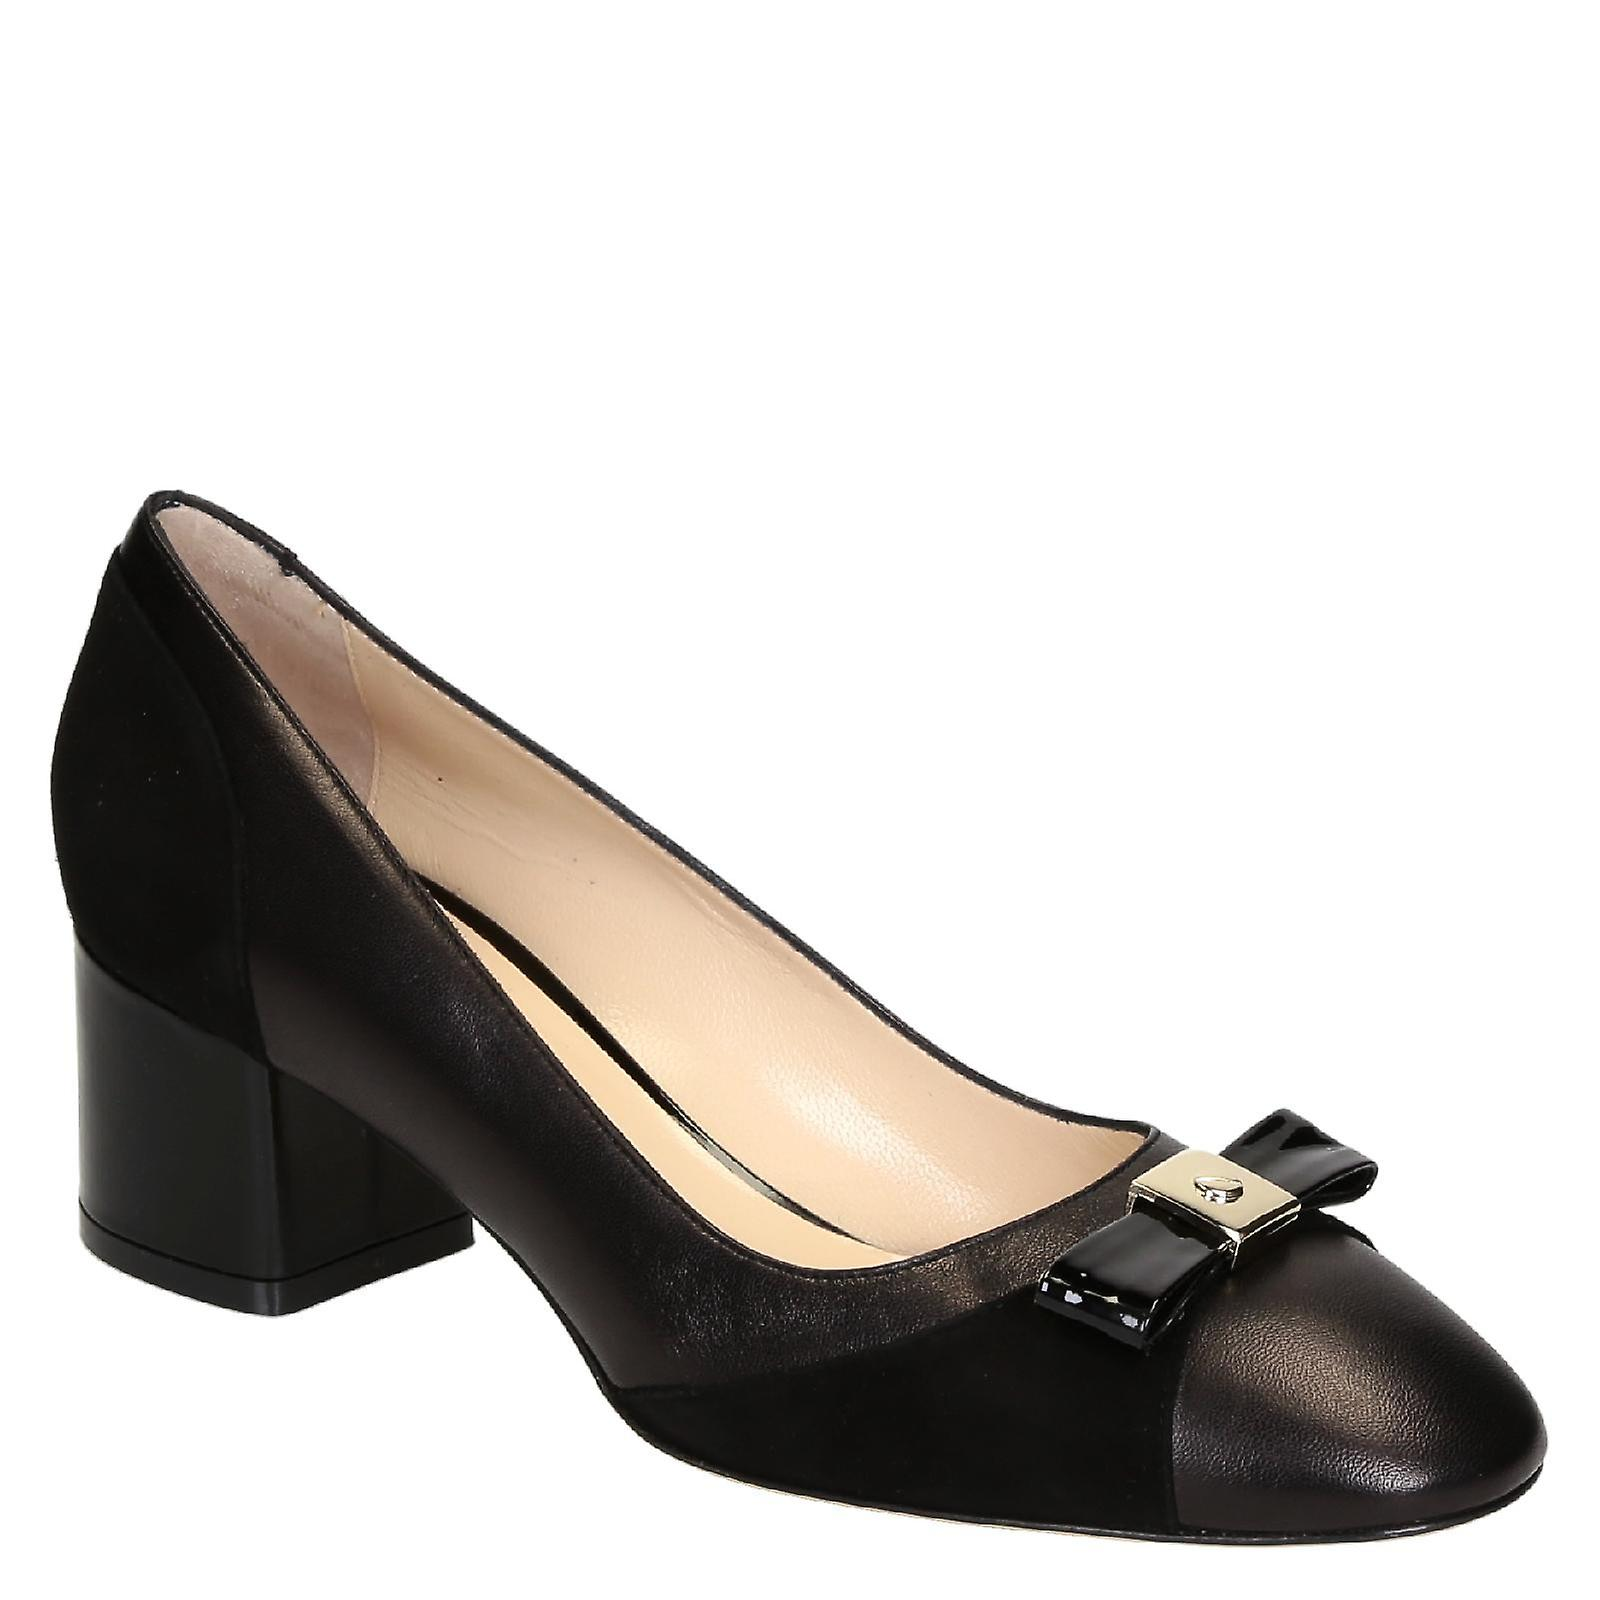 Black leather mid-heel pumps on with bow on pumps toe f0fd84